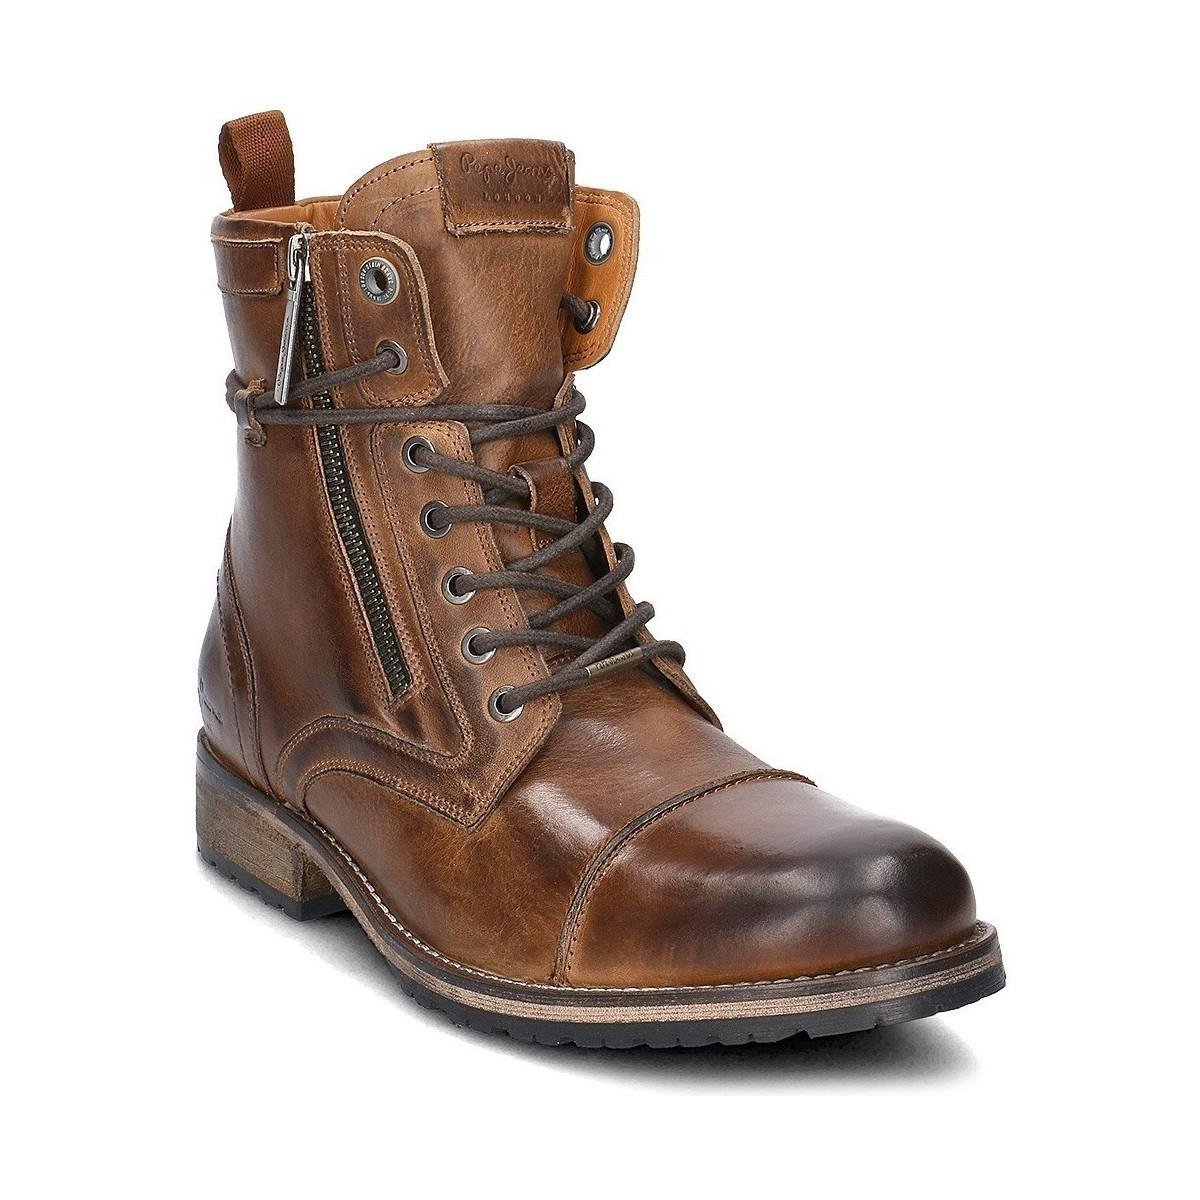 Lyst Pepe Jeans Melting Zipper New Men S Mid Boots In